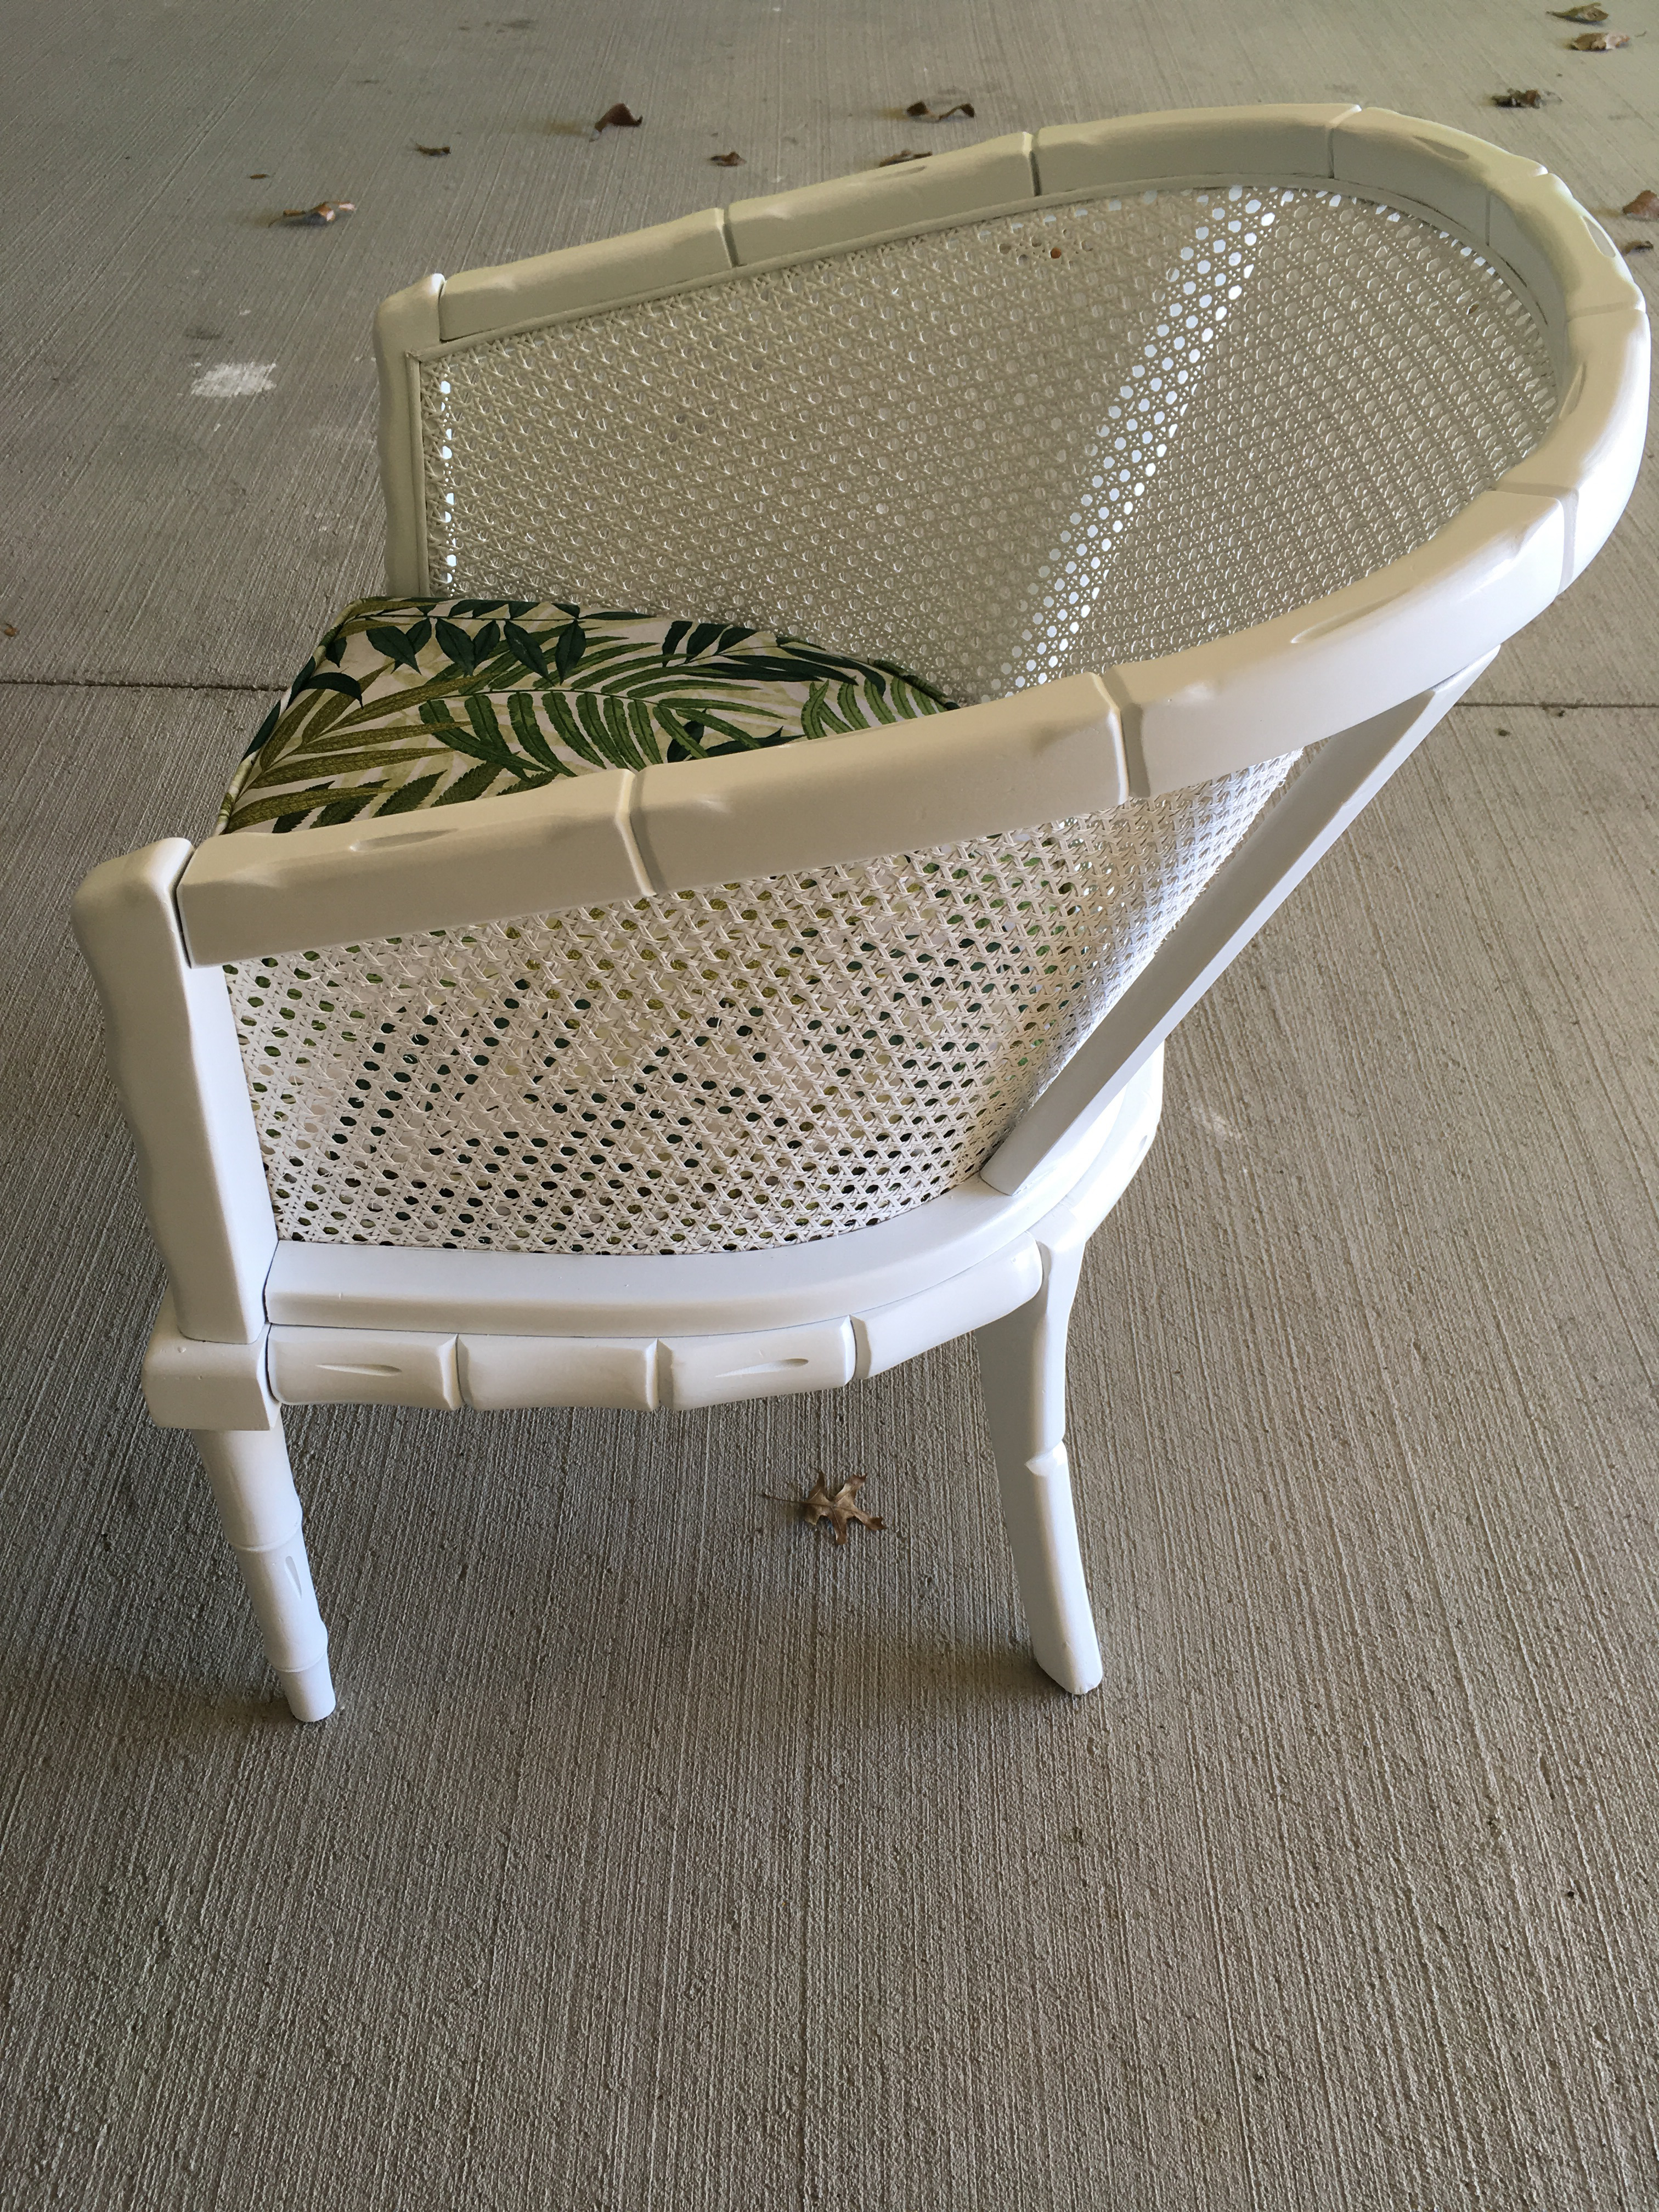 Vintage Faux Bamboo Cane Barrel Back Chair   Image 7 Of 9